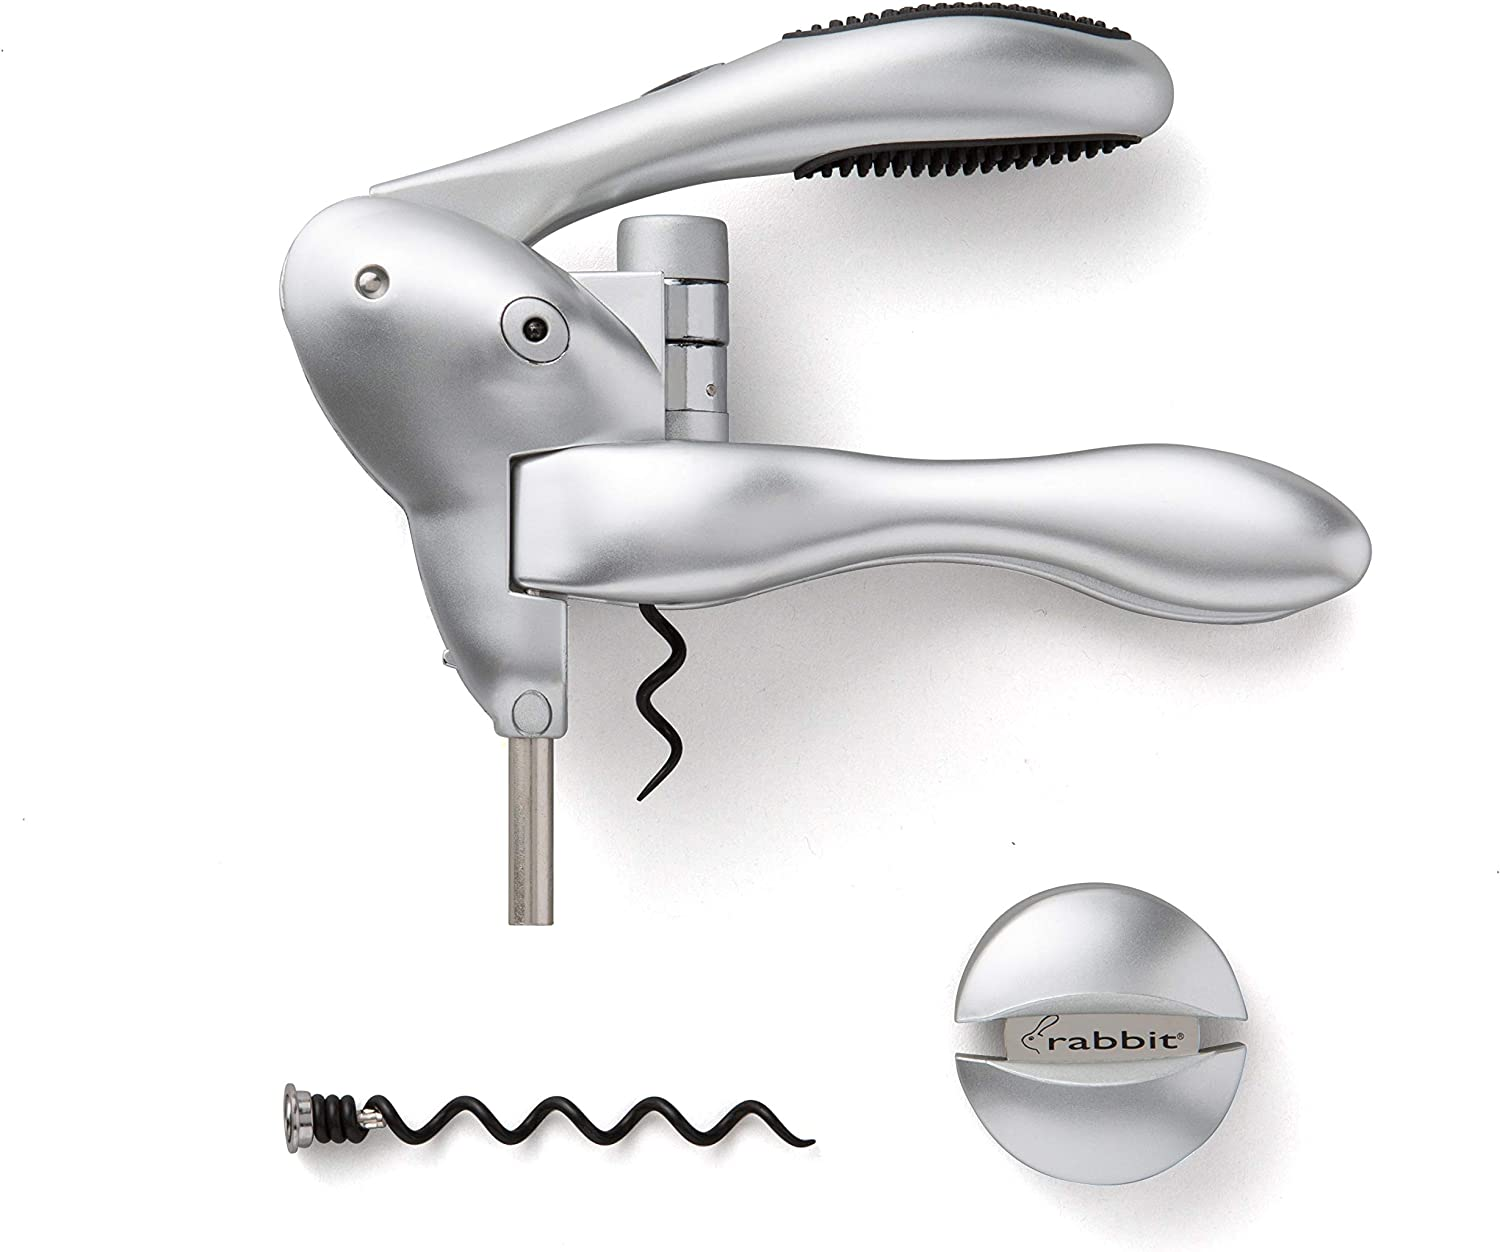 Rabbit Original Lever Corkscrew Wine Opener with Foil Cutter and Extra Spiral (Silver)